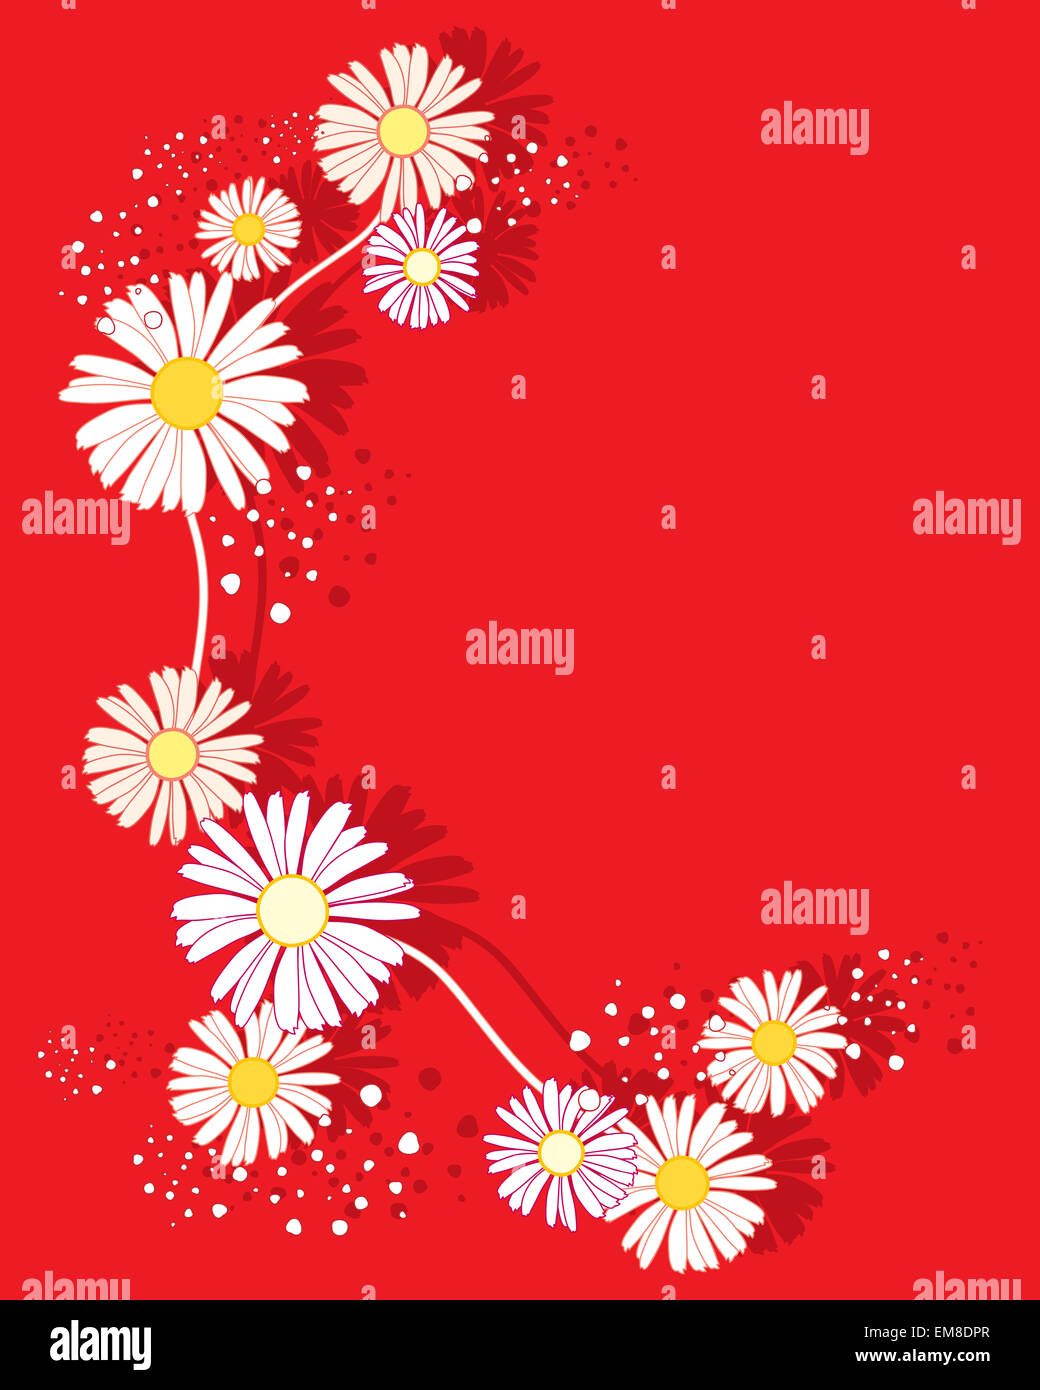 an illustration of a summer daisy flower design on a bright red ...